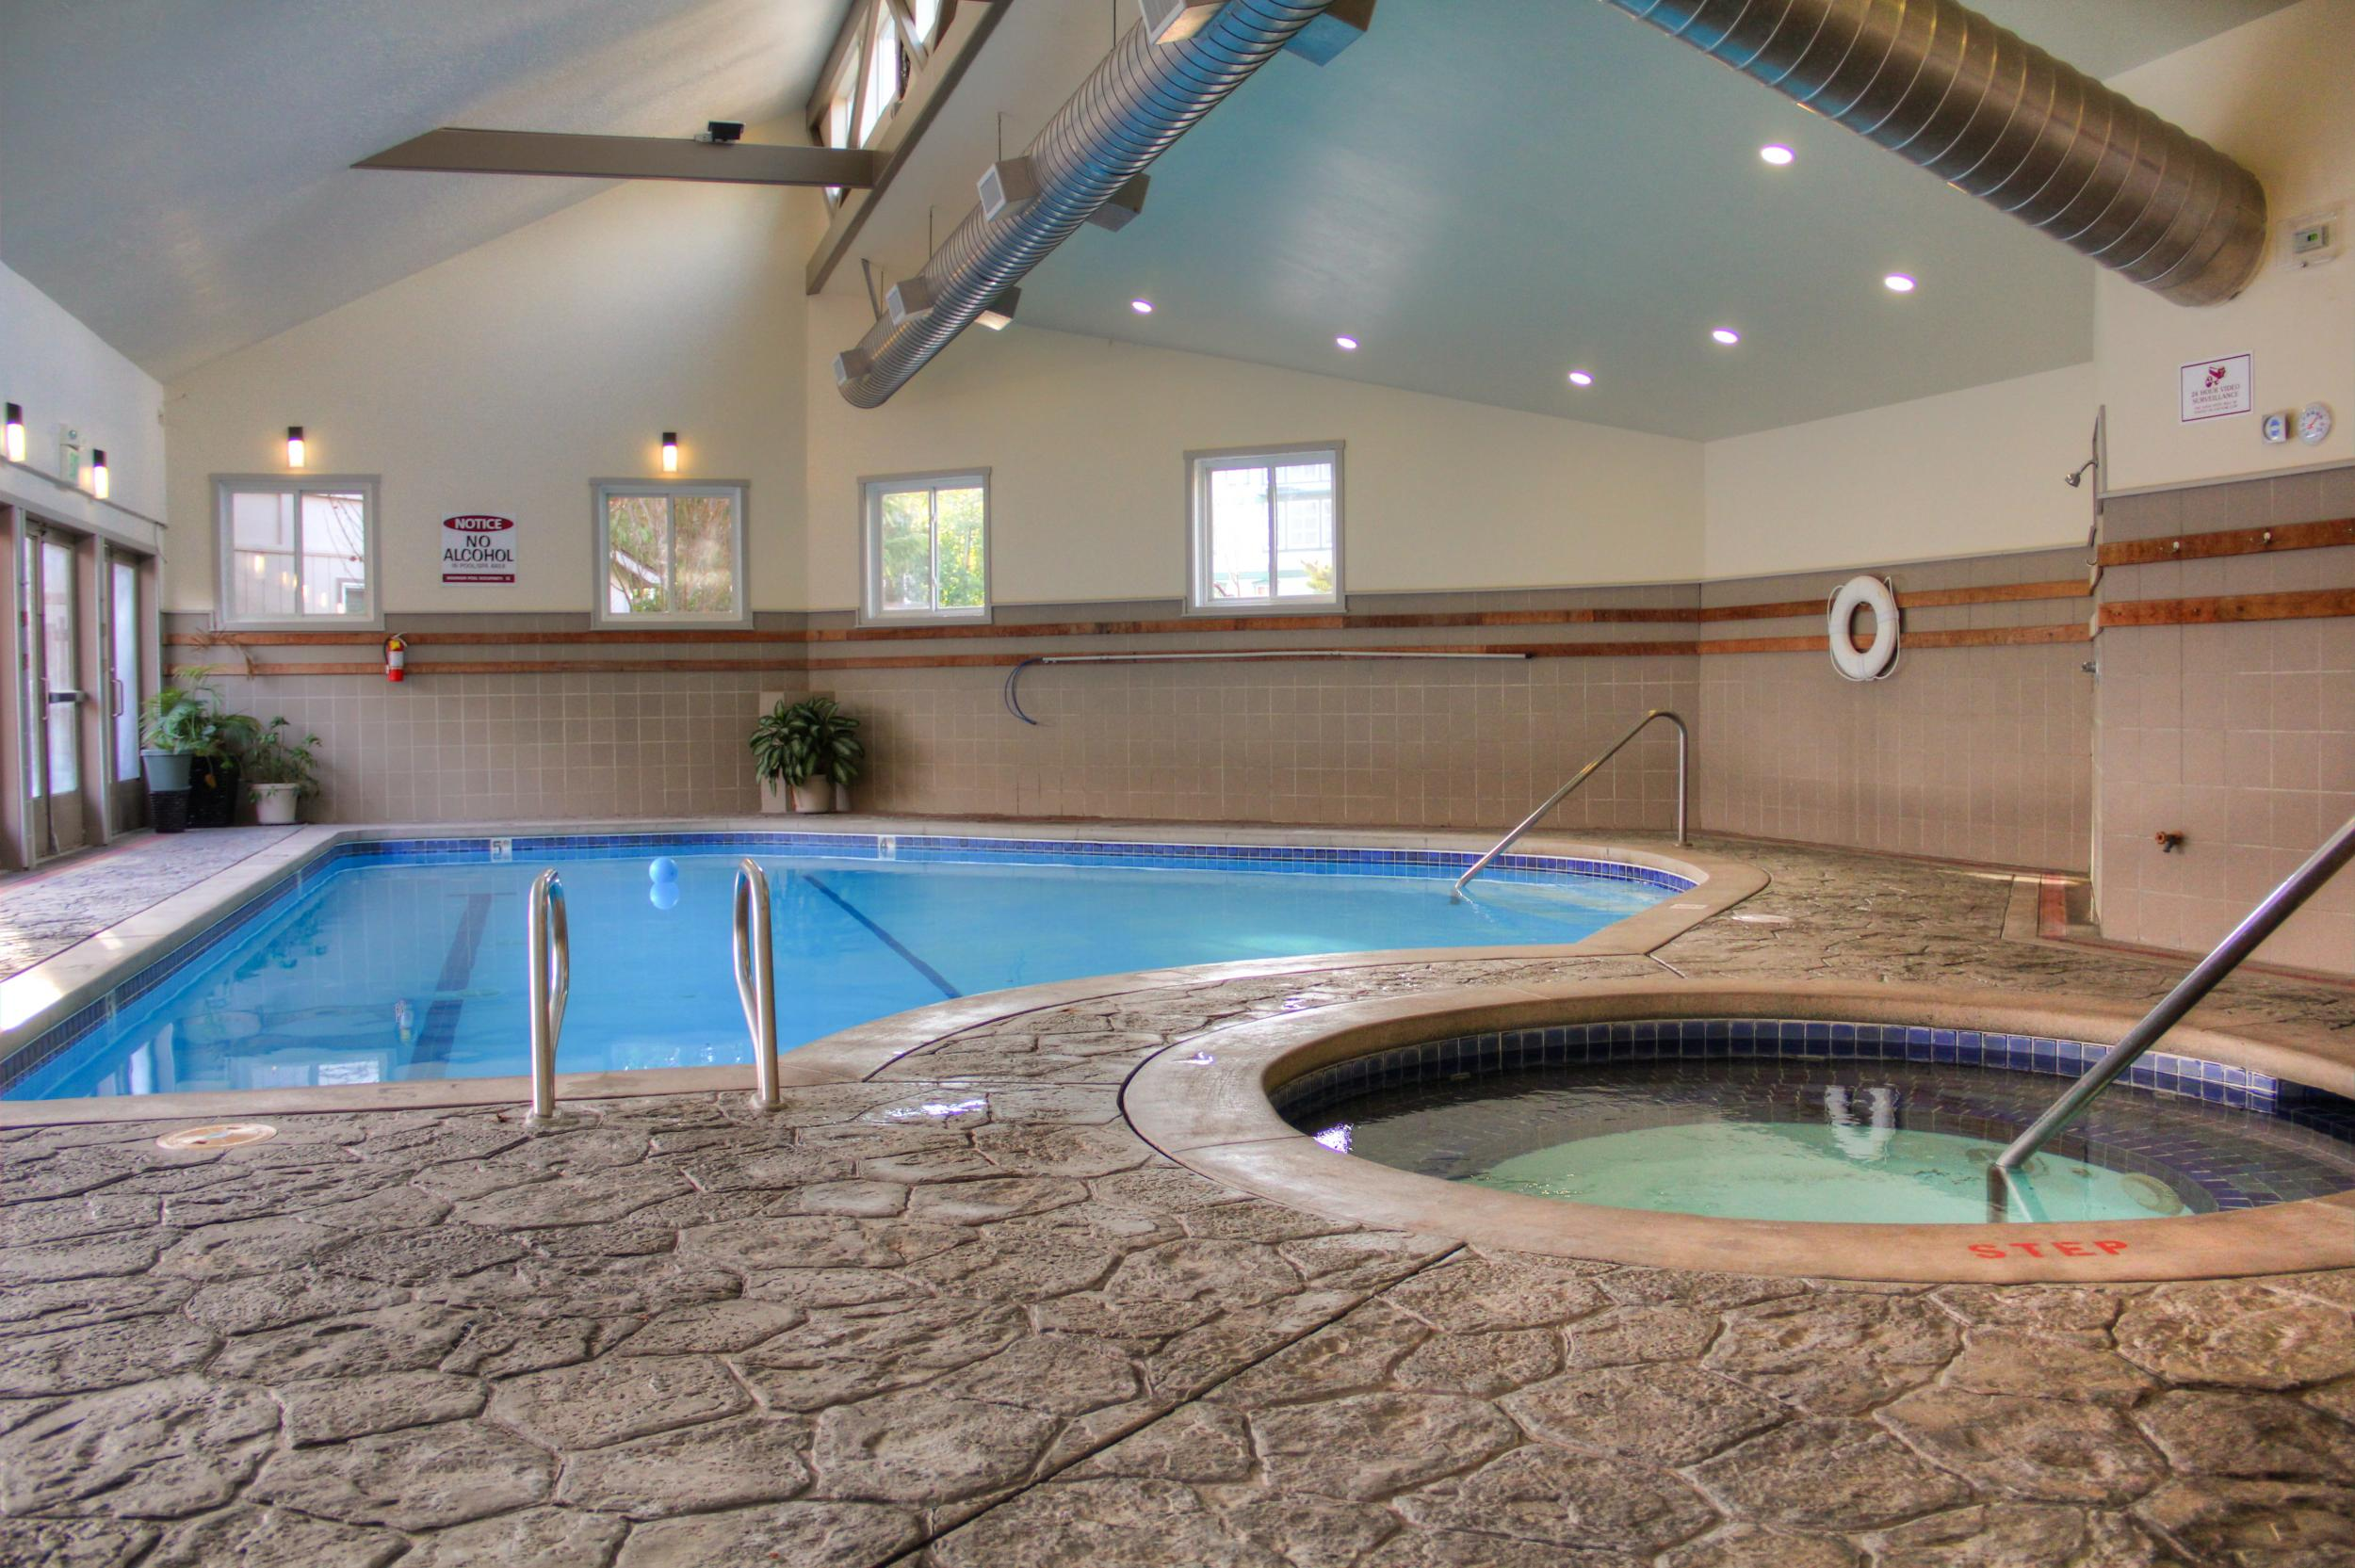 Jacuzzi In The Pool San Juan Island Hotel With An Indoor Pool Friday Harbor